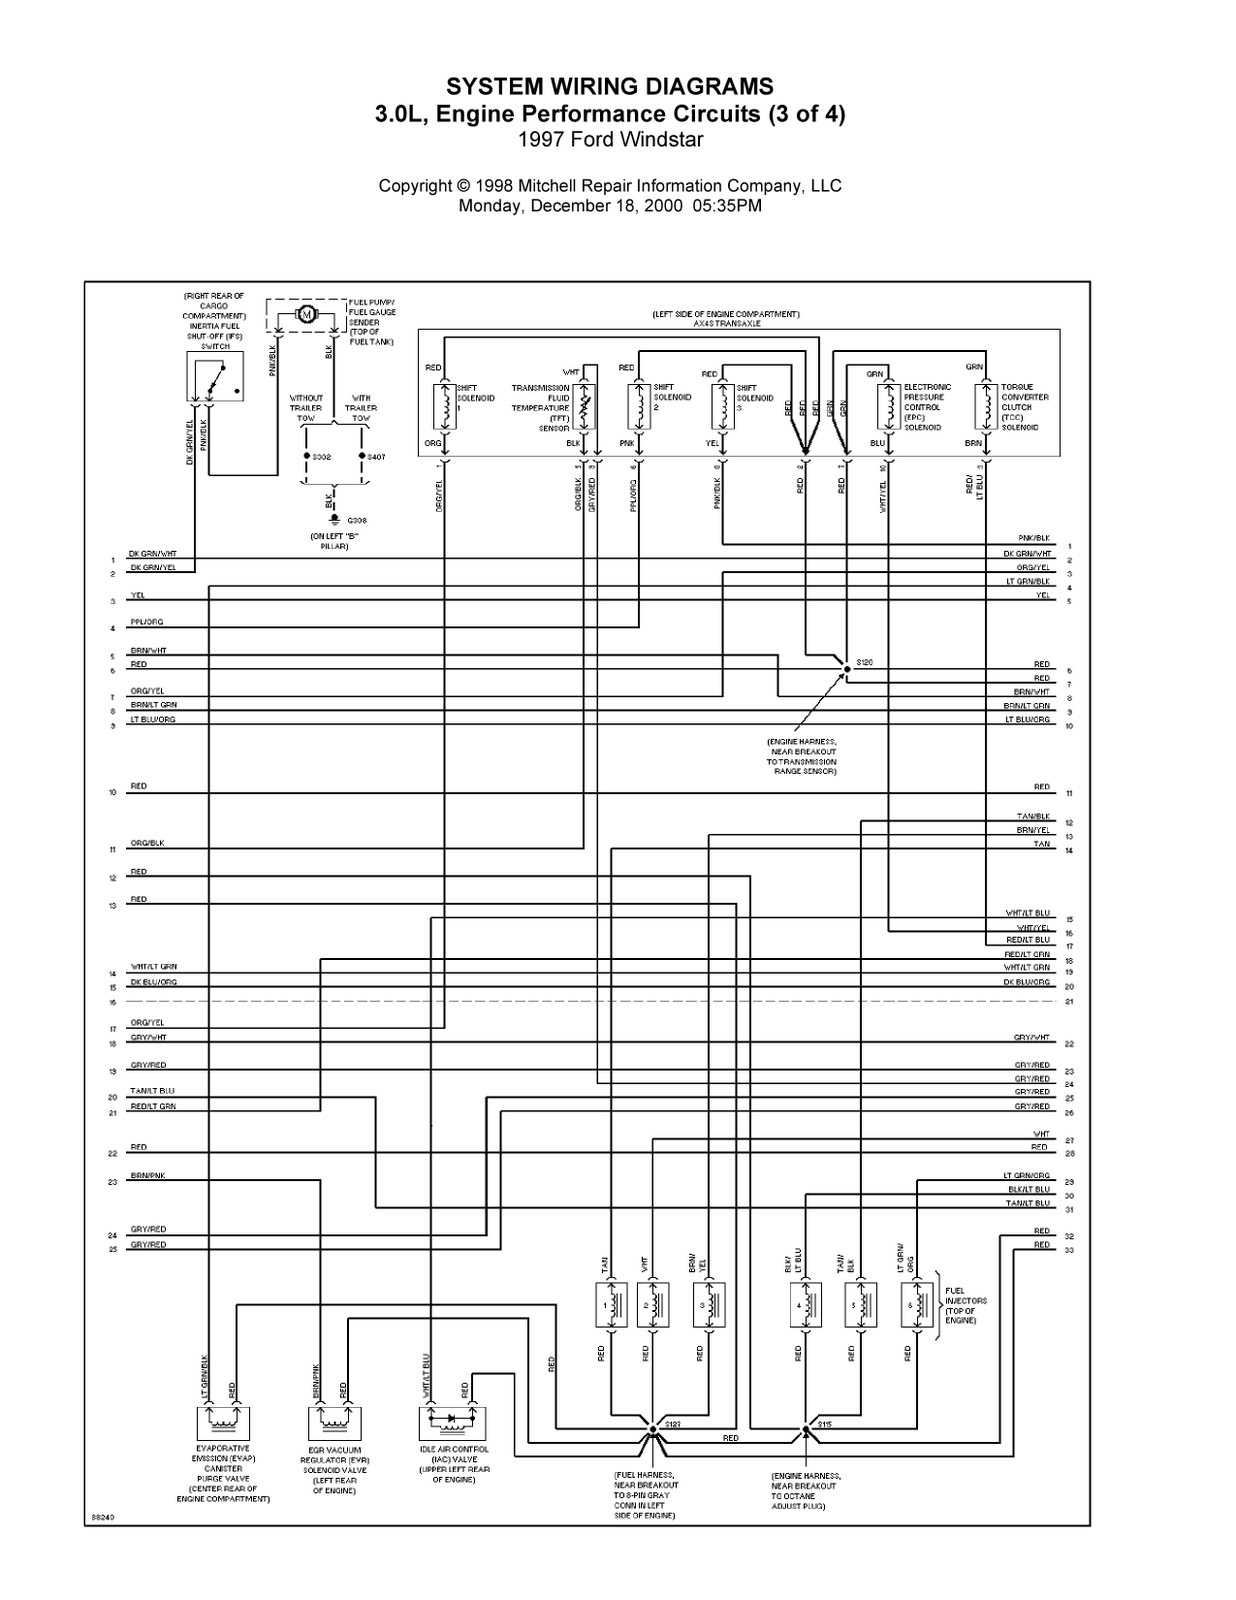 2000 Ford Windstar Serpentine Belt Diagram Defi Meter Wiring Engine